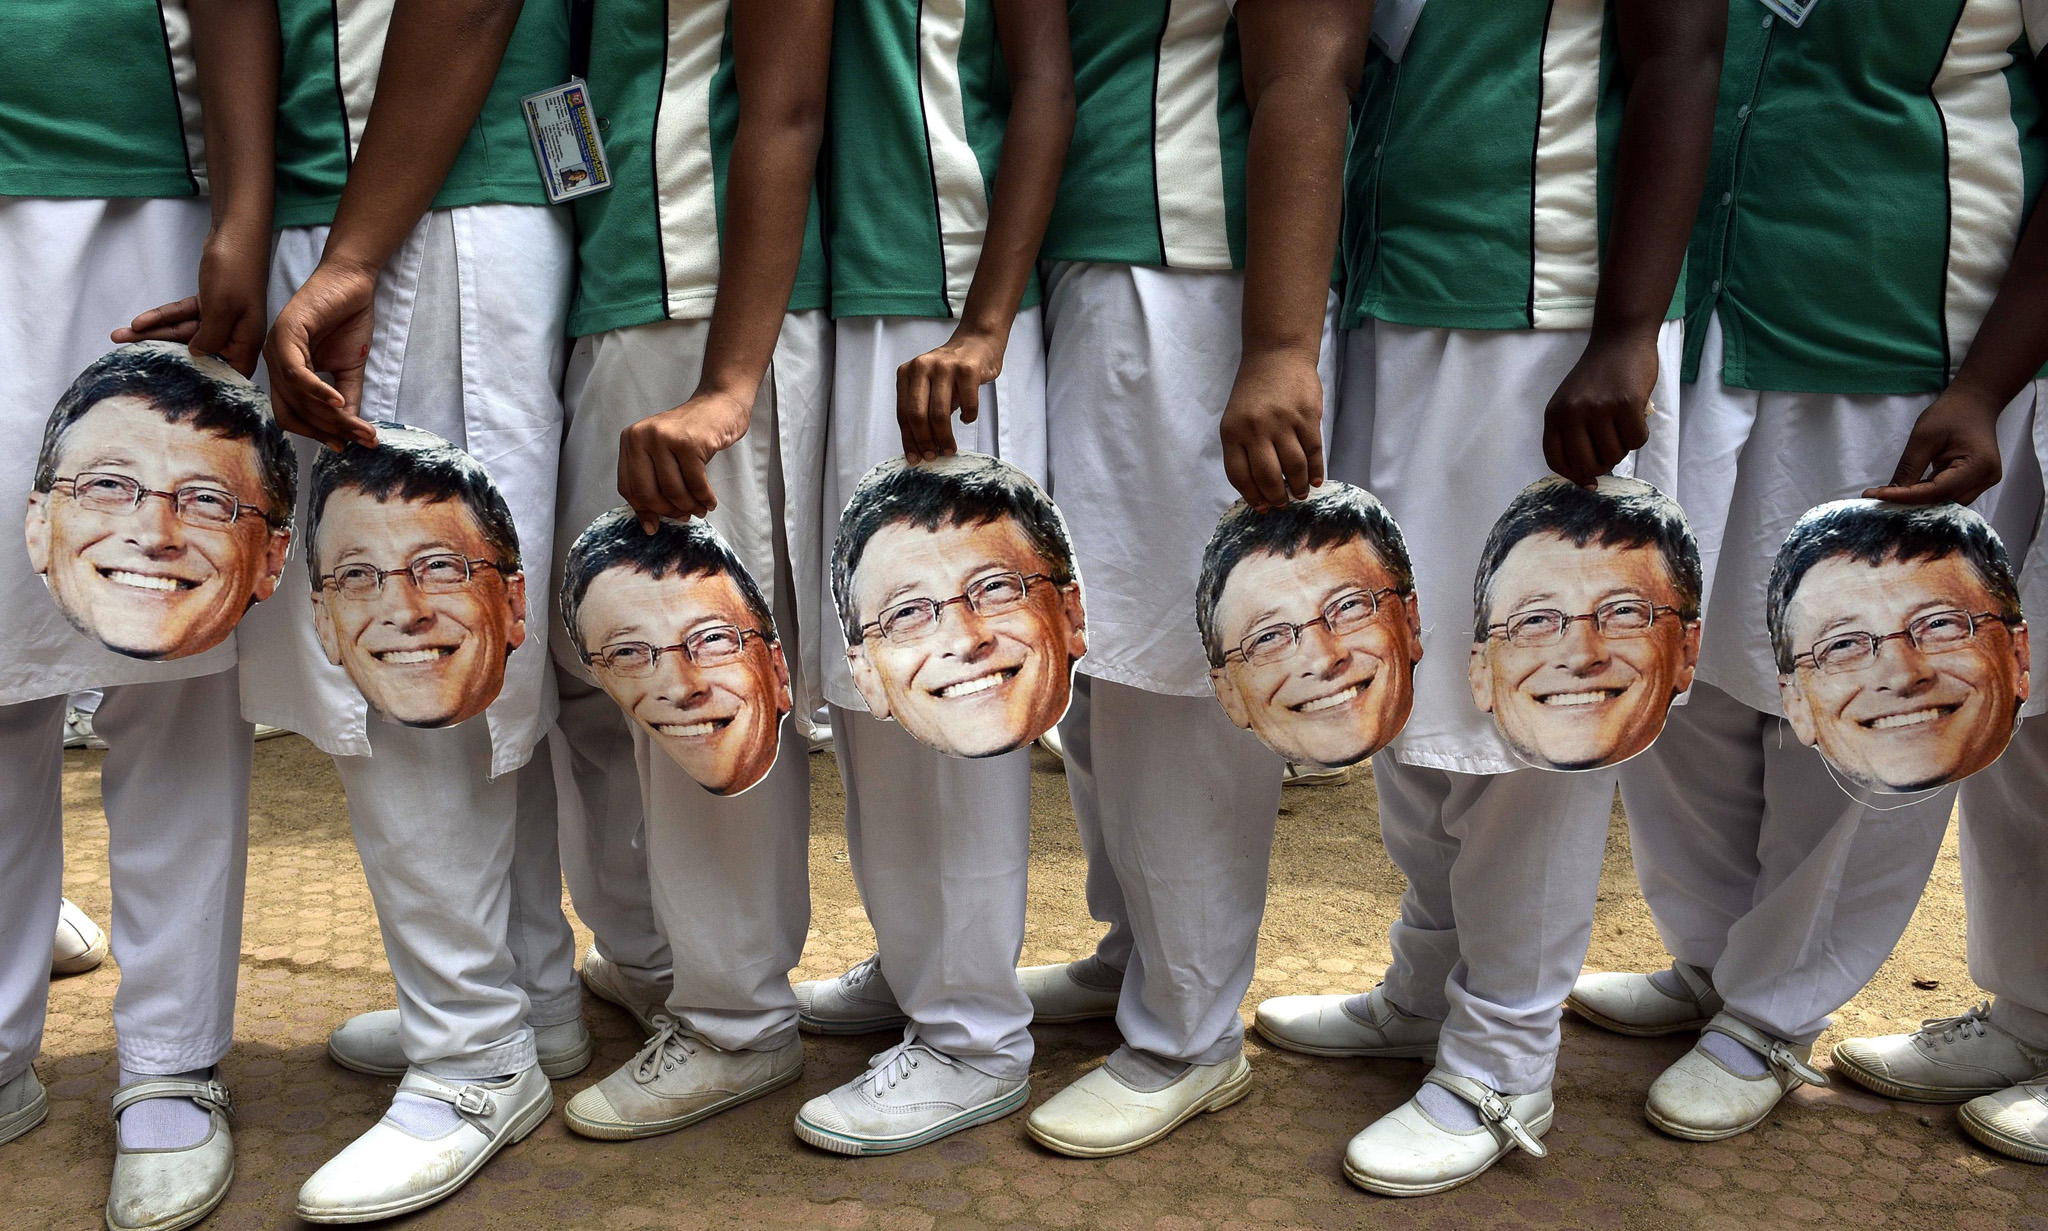 Indian schoolchildren holds masks with t...Indian schoolchildren holds masks with the face of Microsoft founder and philanthropist Bill Gates to mark his 60th birthday, at a school in Chennai on October 28, 2015. AFP PHOTOSTR/AFP/Getty Images